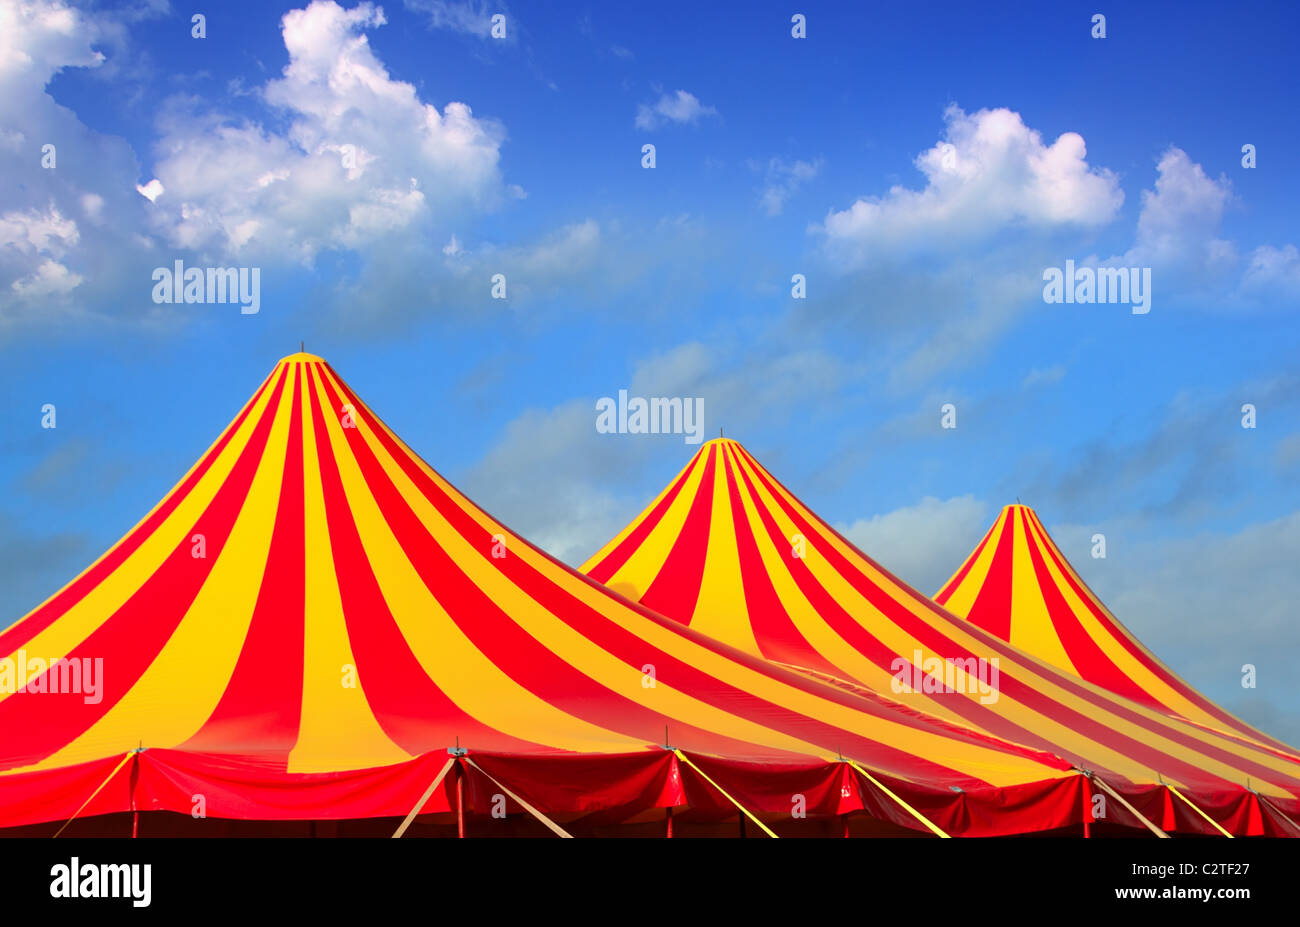 Circus tent red orange and yellow stripped pattern blue sky - Stock Image